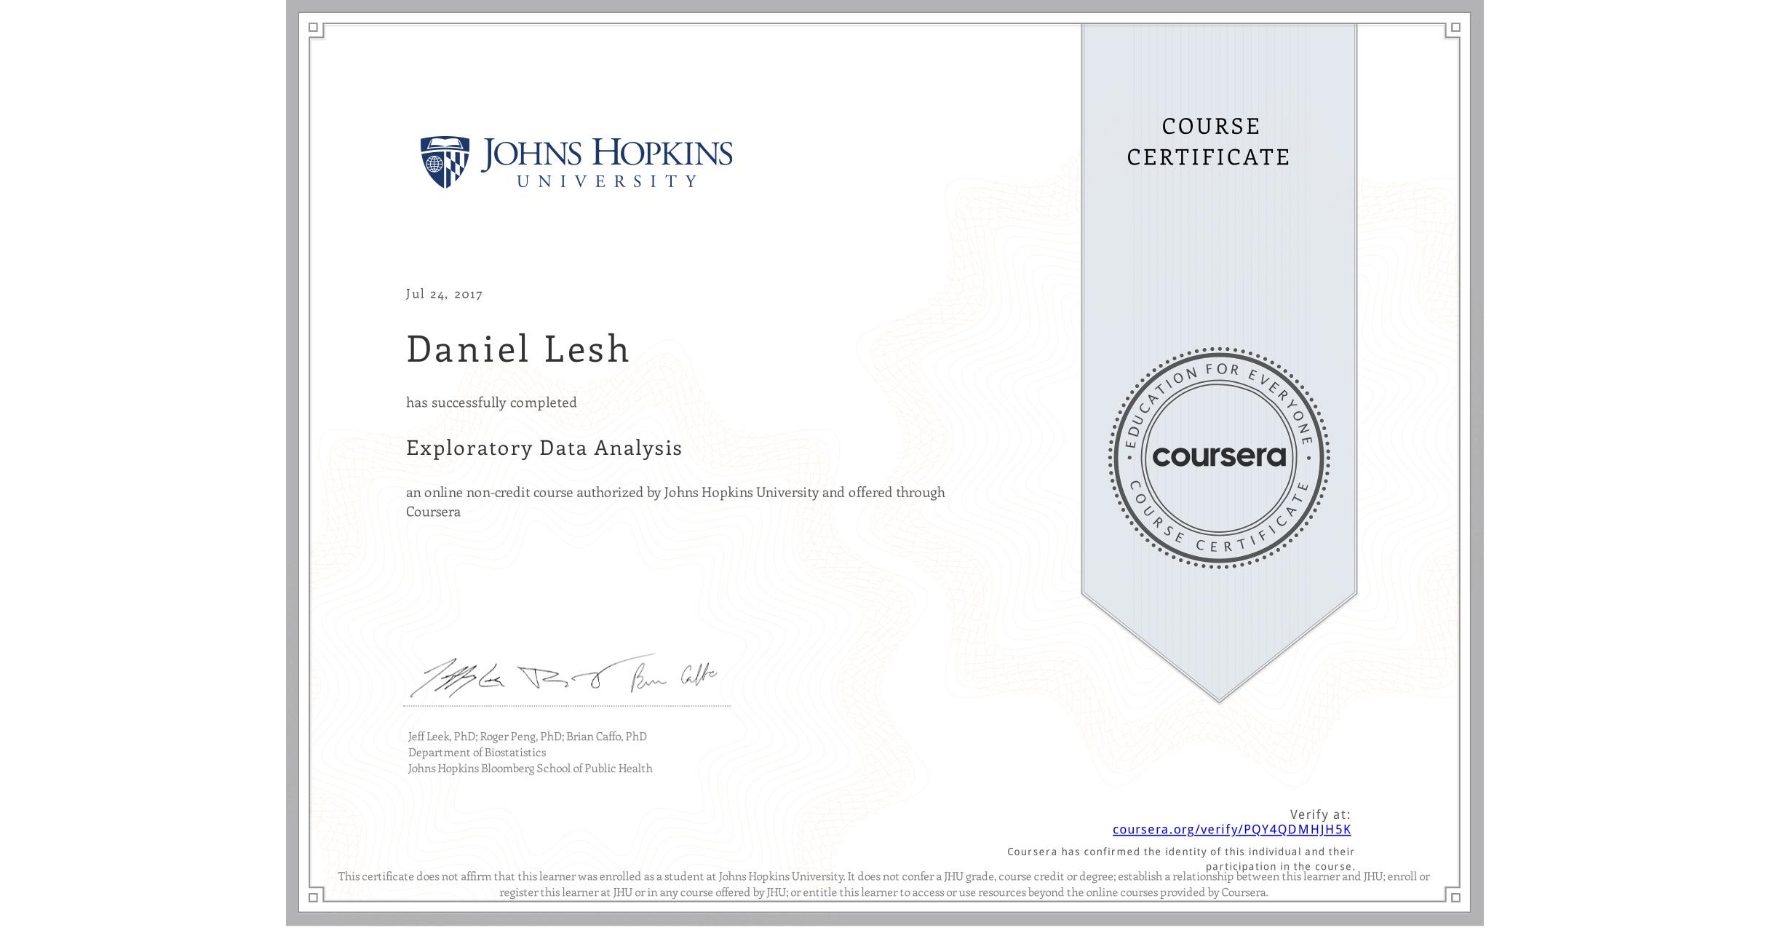 View certificate for Daniel Lesh, Exploratory Data Analysis, an online non-credit course authorized by Johns Hopkins University and offered through Coursera